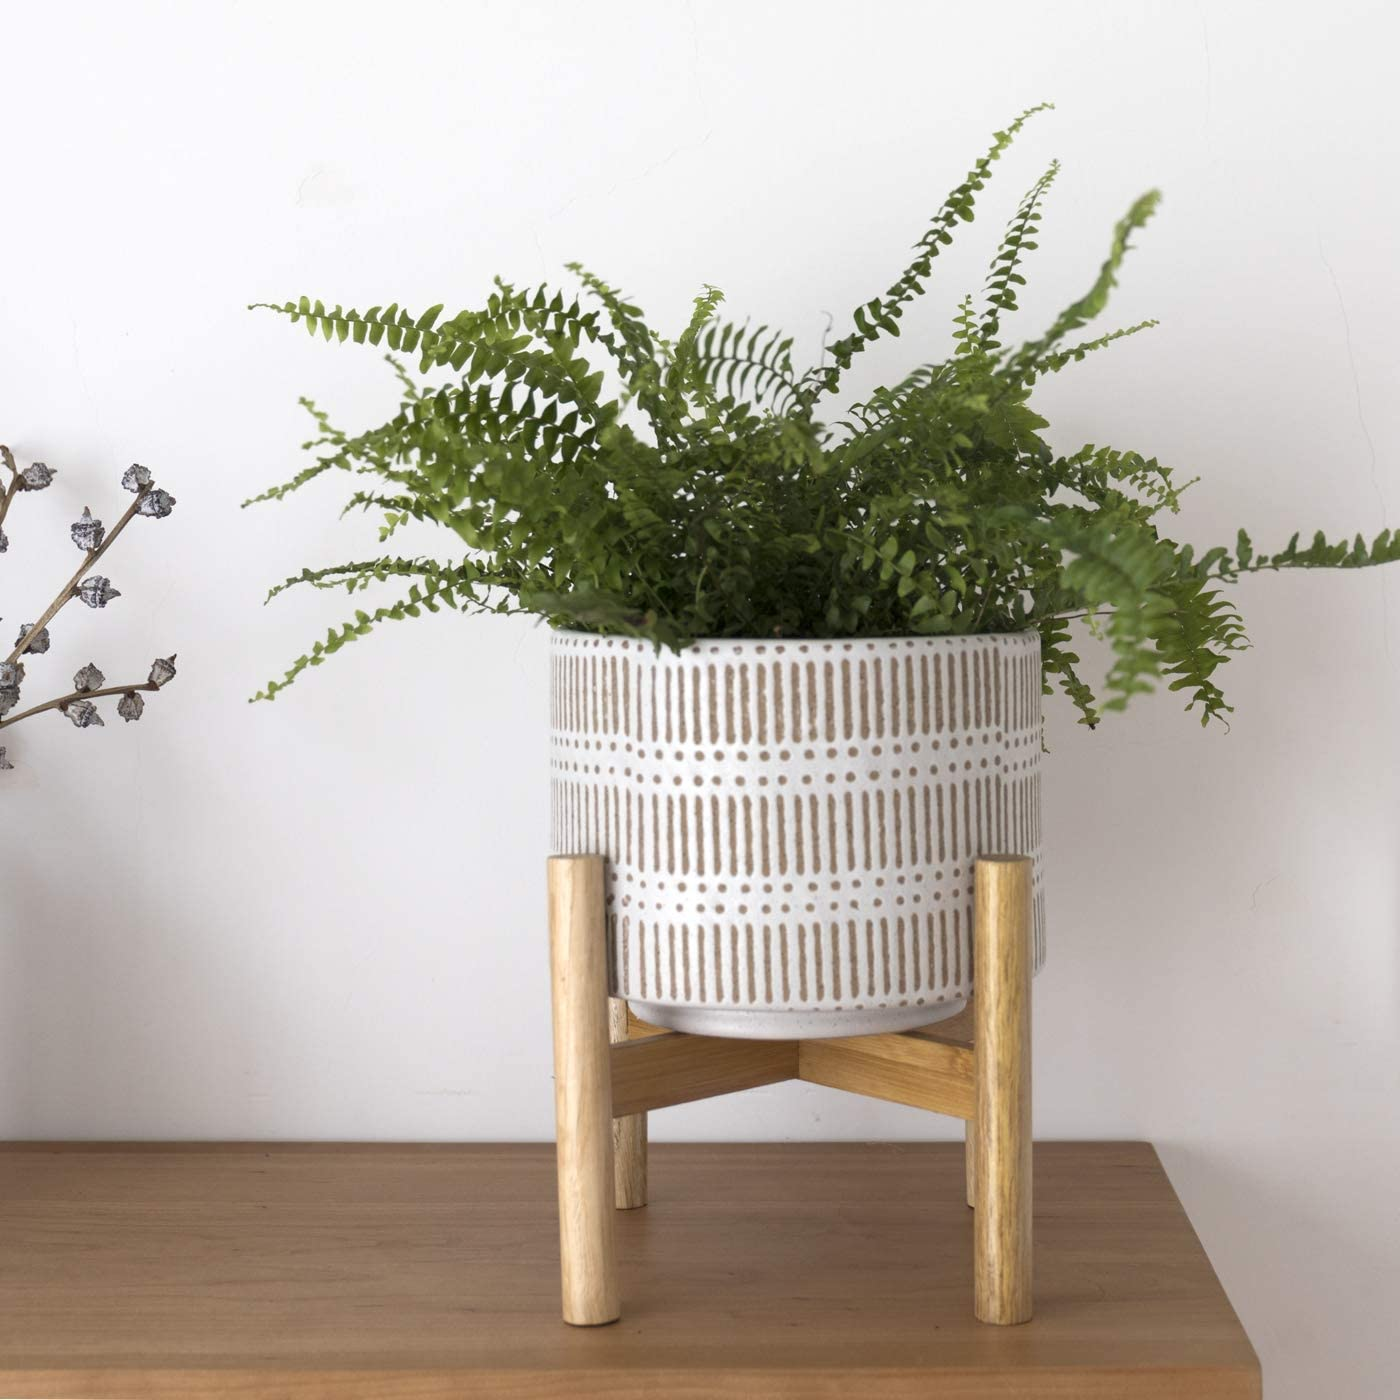 Ceramic Plant Pot with Wood Stand - 7.3 Inch Modern Round Decorative Flower Pot Indoor with Wood Planter Holder, Beige and White : Garden & Outdoor